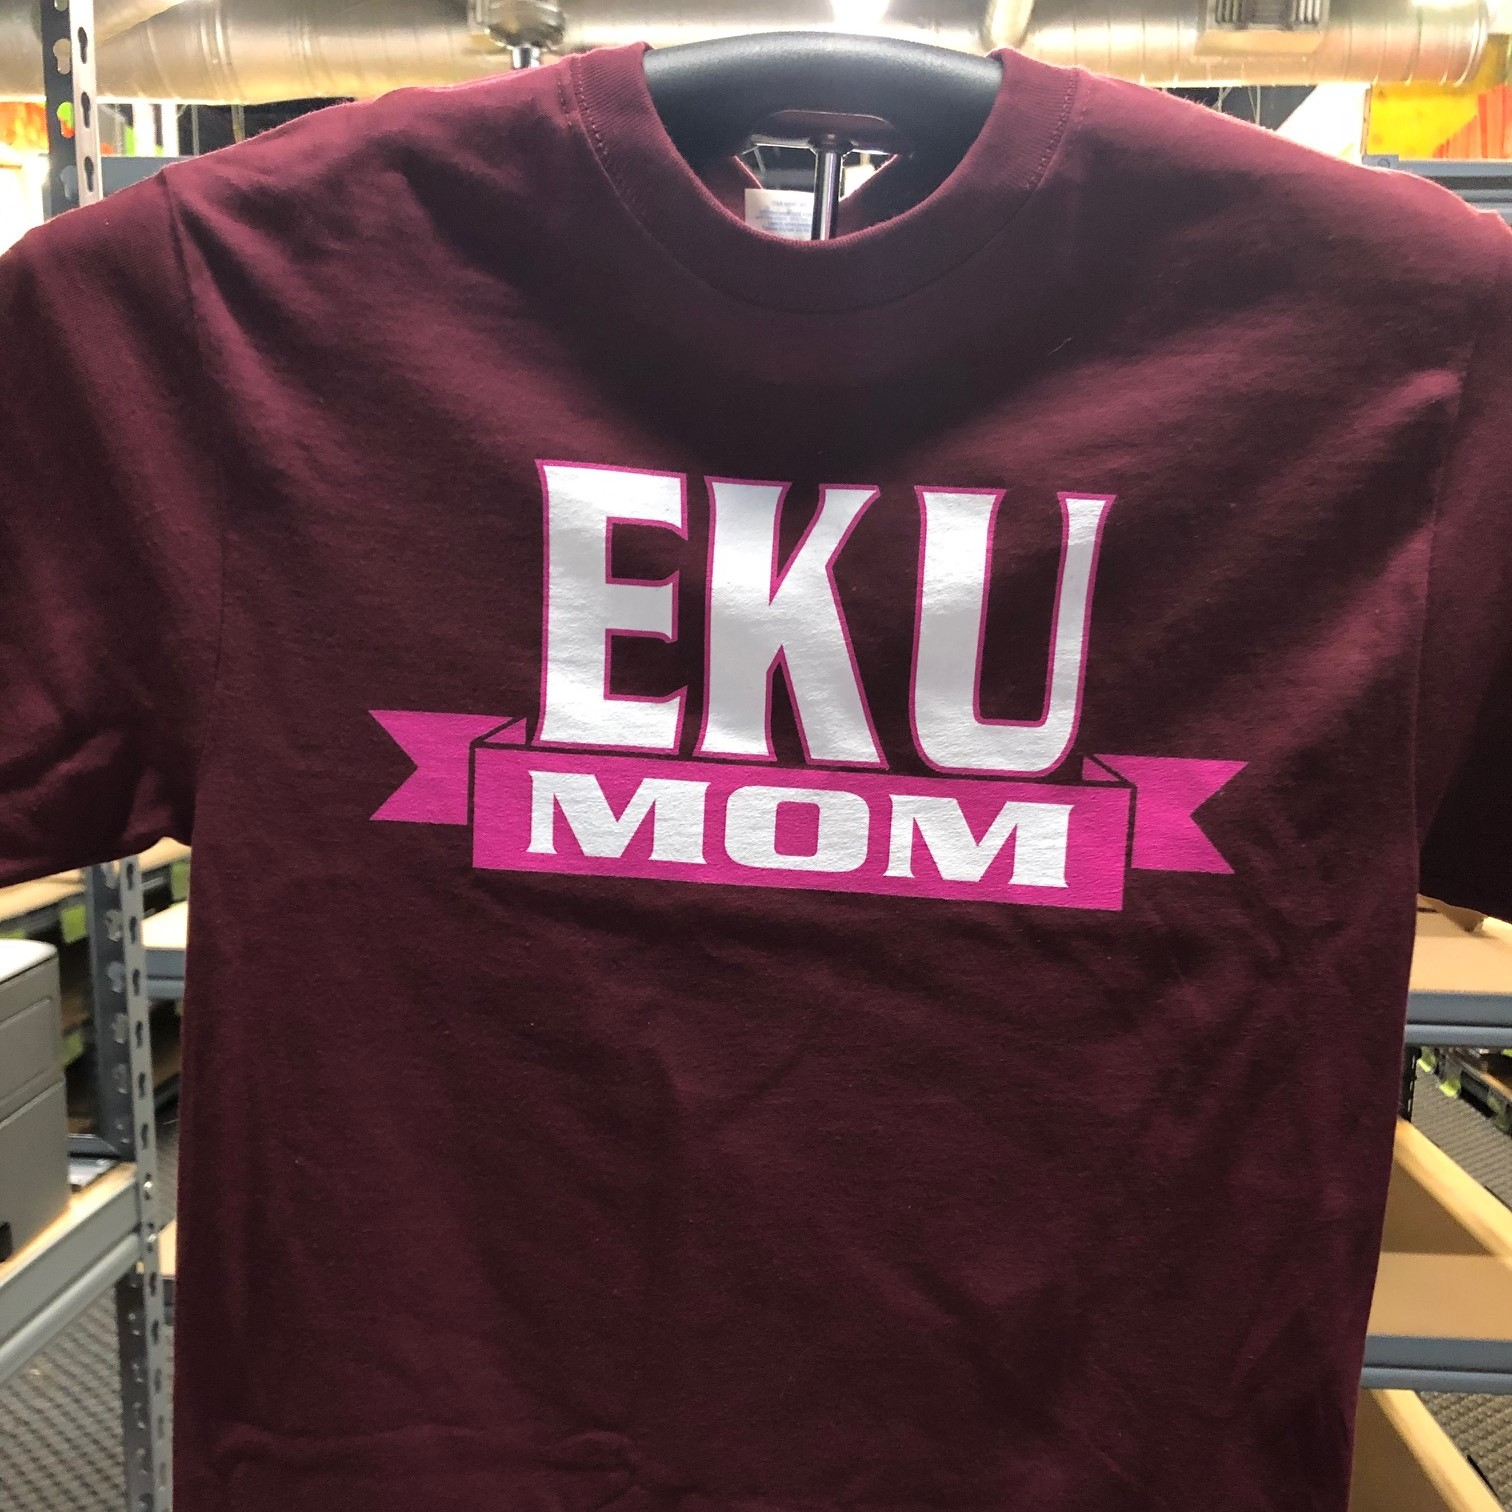 EKU MOM SHIRT